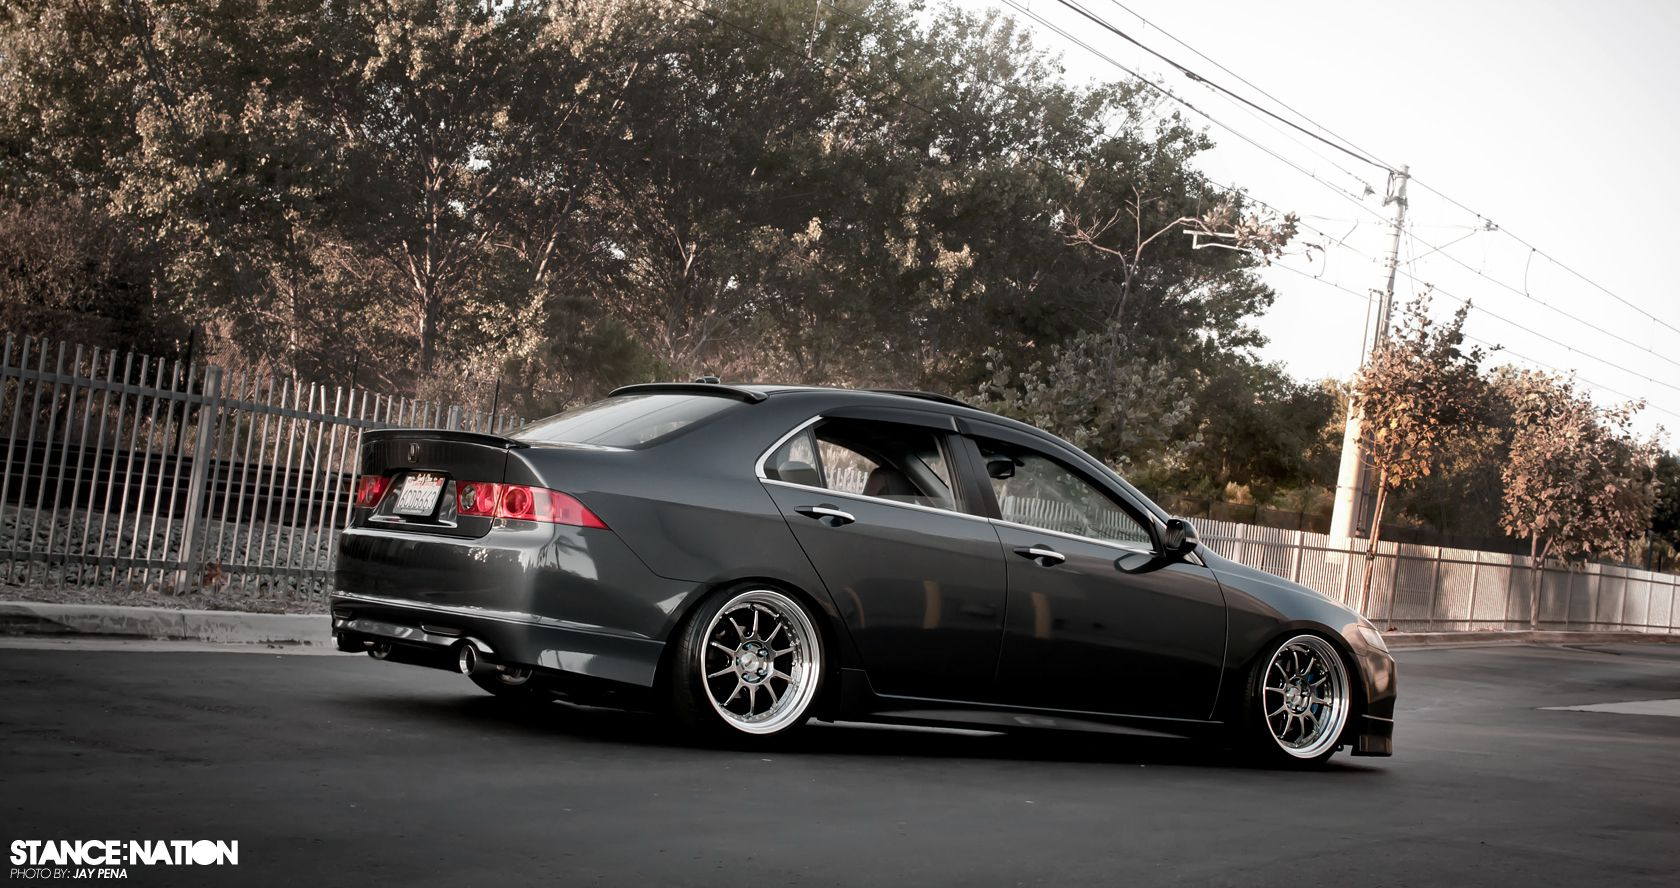 Stanced TSX   Proper Cars + Sharp Photography = Happy ...